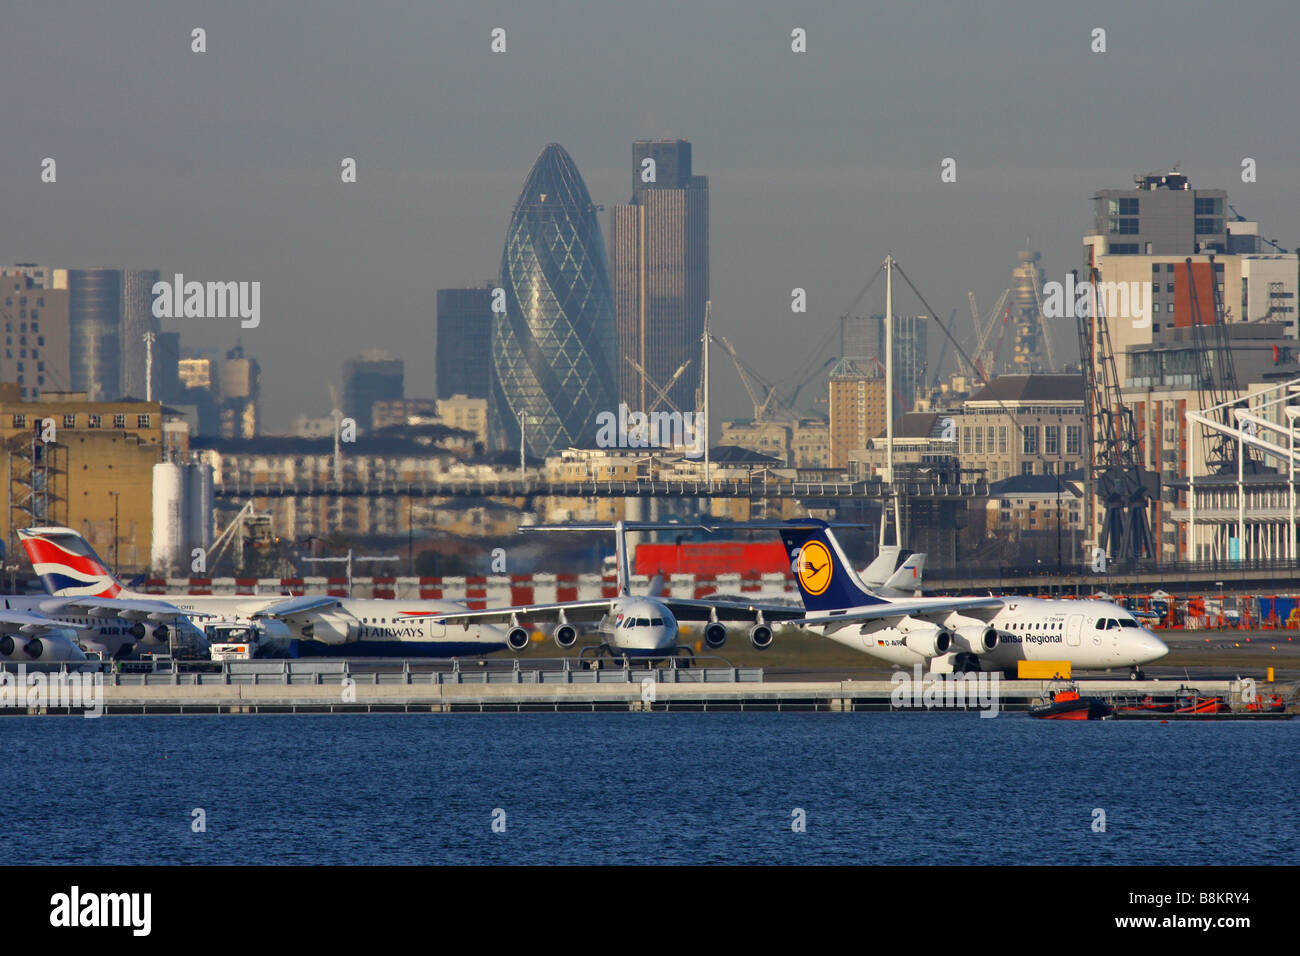 Overview on London City Airport with London's skyscrapers in background - Stock Image